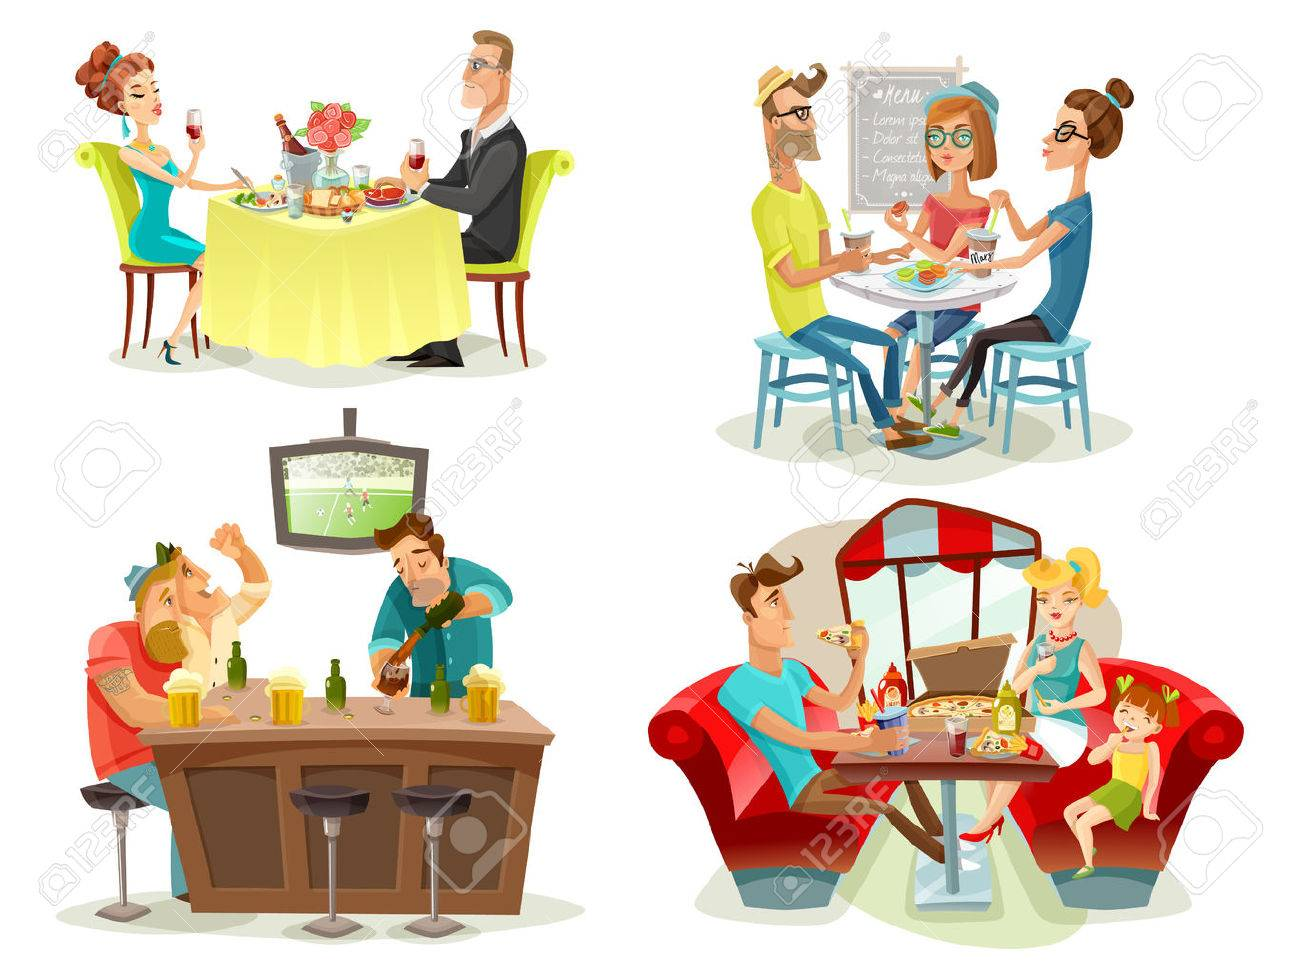 Restaurant cafe bar 4 colorful pictures square with football fans family diner and dating couple abstract vector illustration Foto de archivo - 61577044